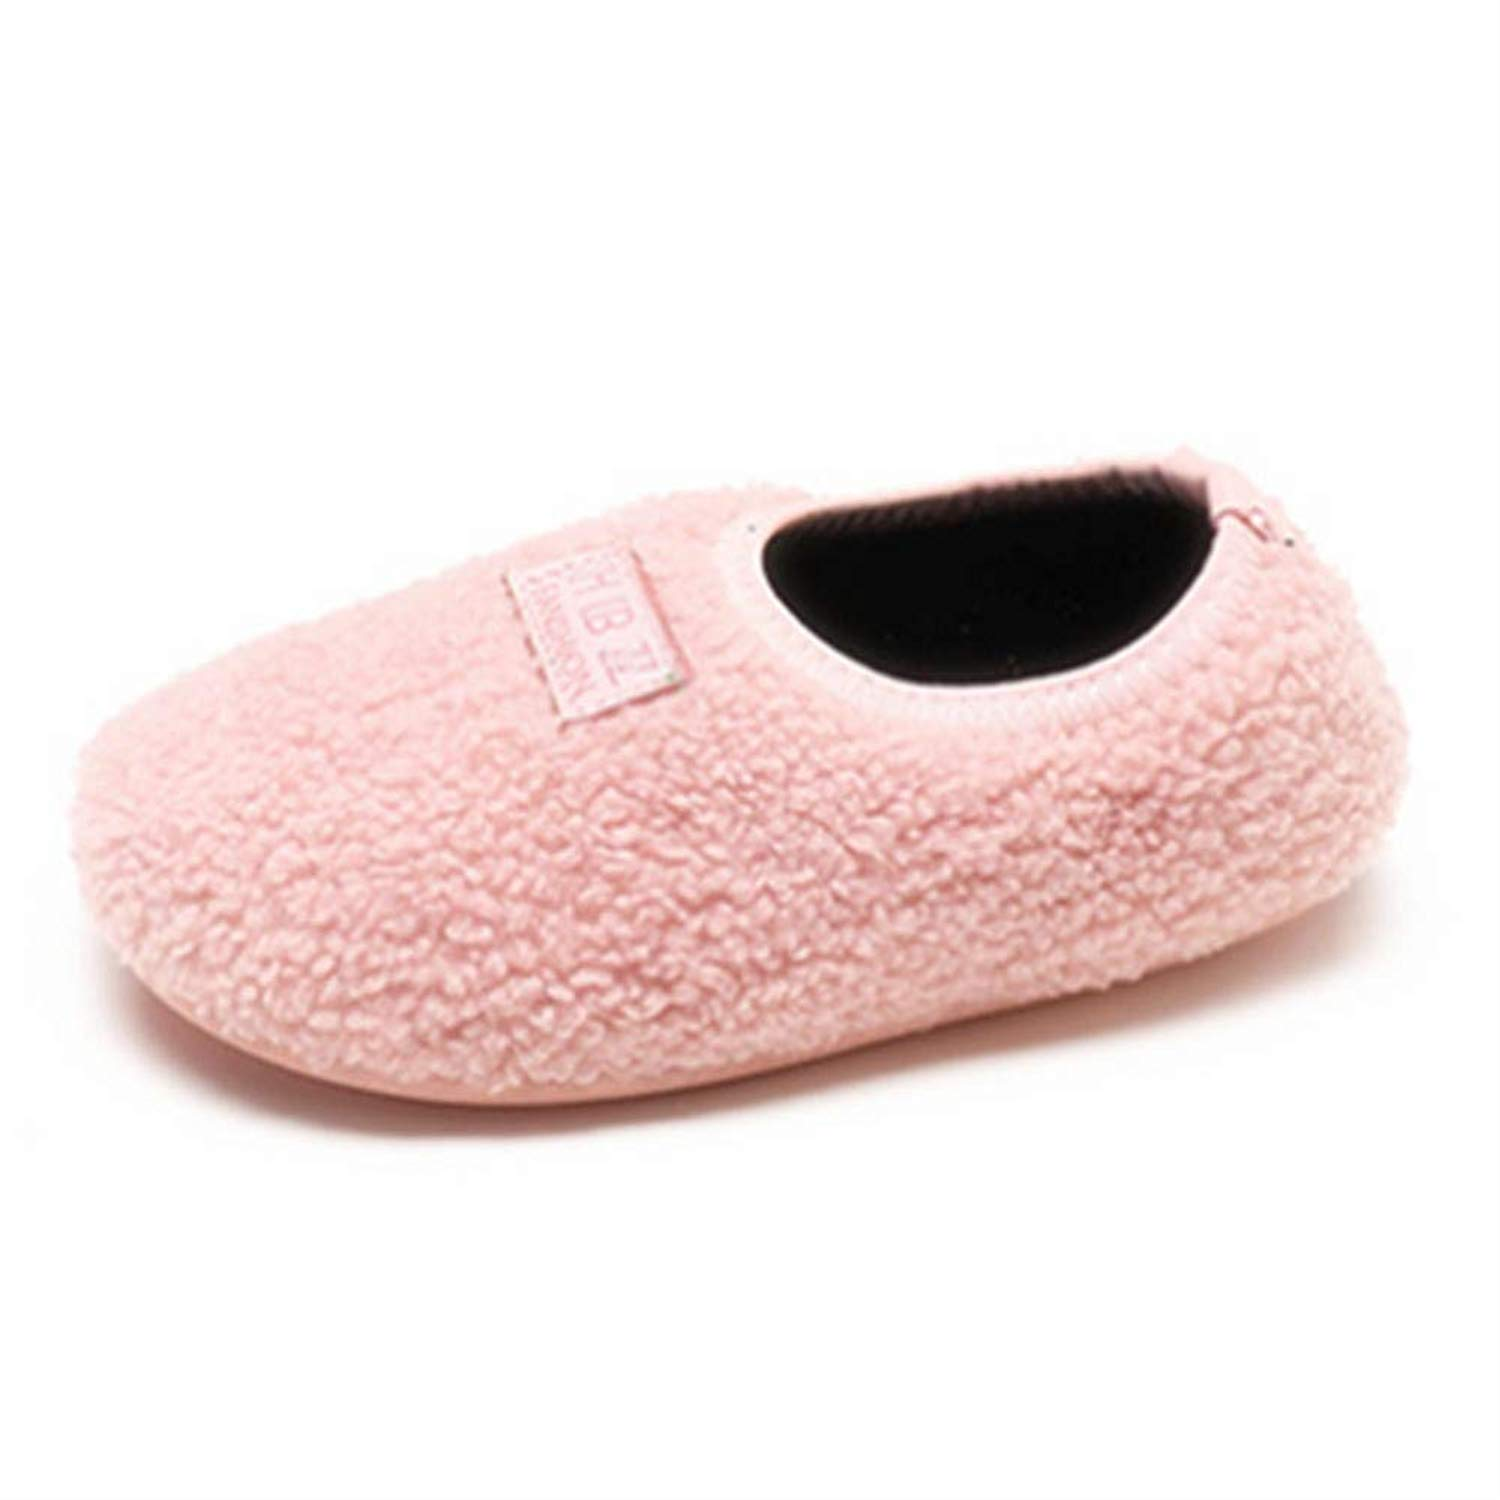 2ac863b3e36 Get Quotations · Elcssuy Kids Slippers Fur Lined Warm Soft Comfy Cute Home  Slippers for Boys Girls Indoor